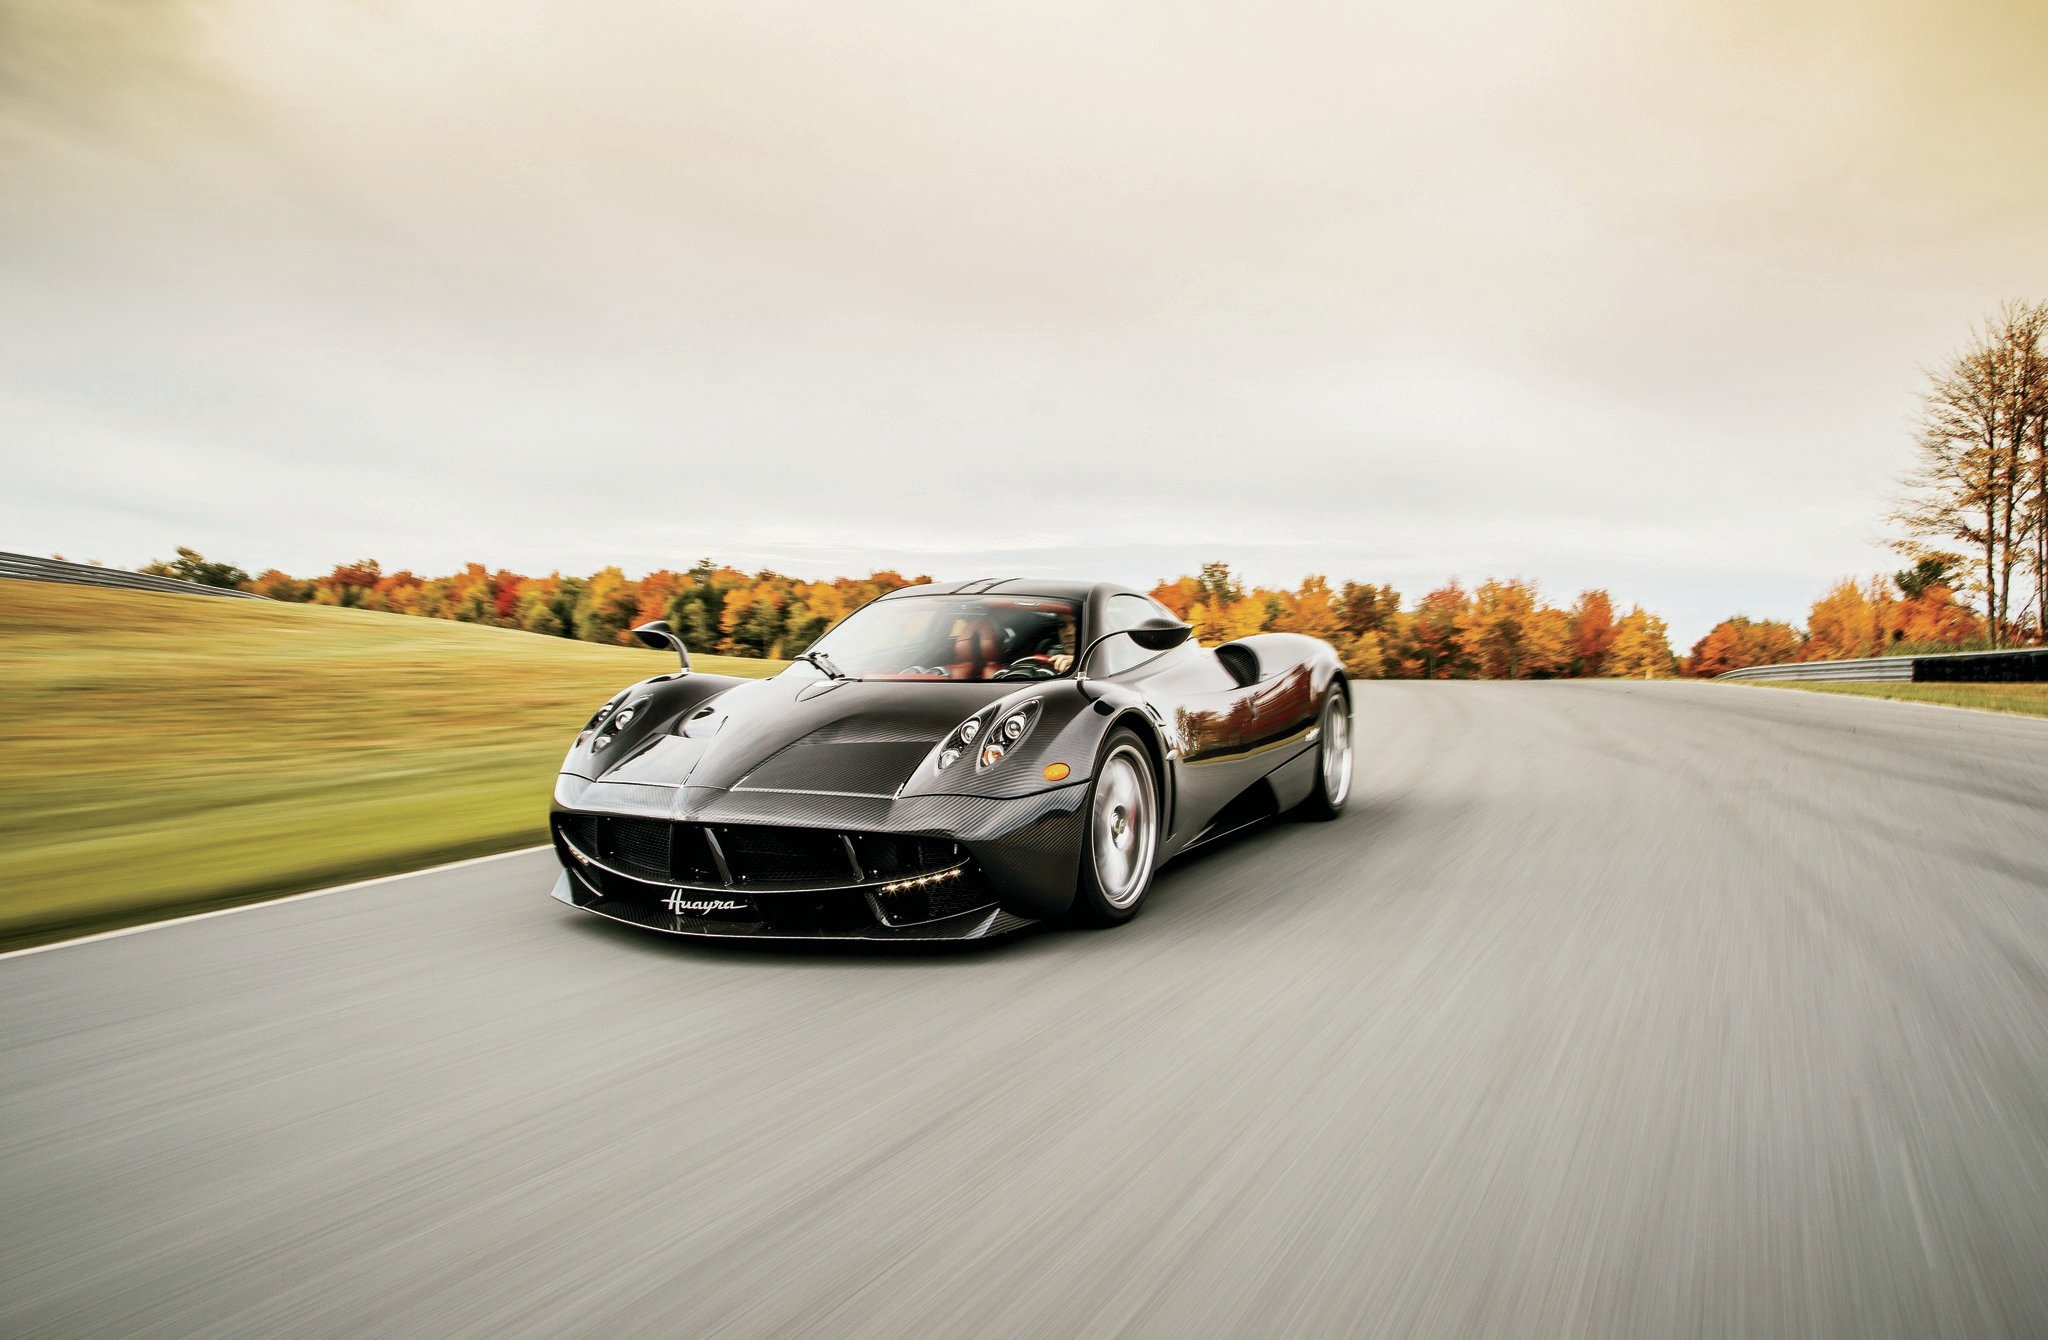 Performance of 2015 Pagani Huayra